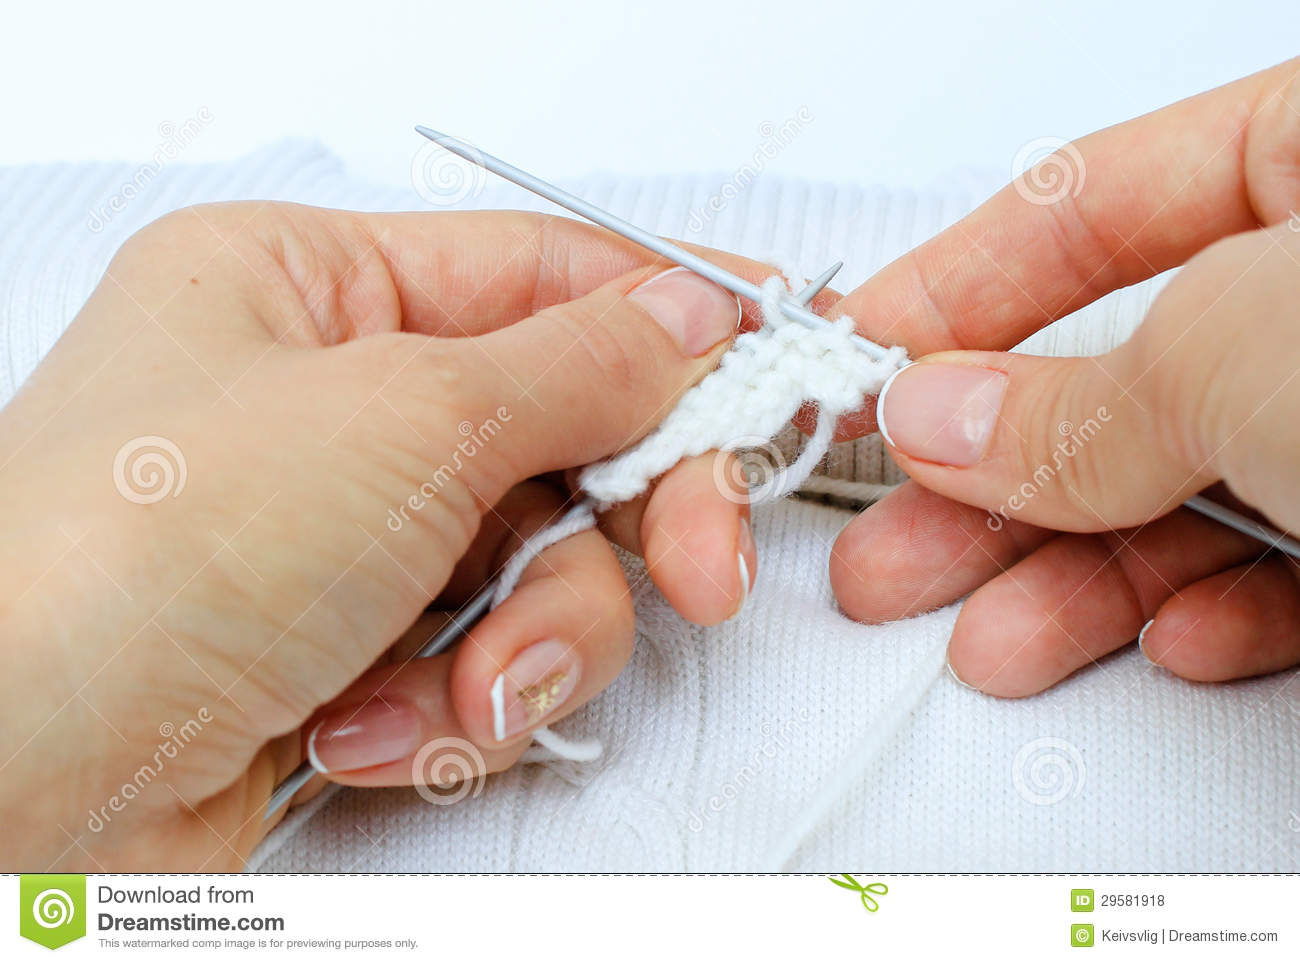 Knitting Hands Clipart : Hands knitting needles royalty free stock photos image